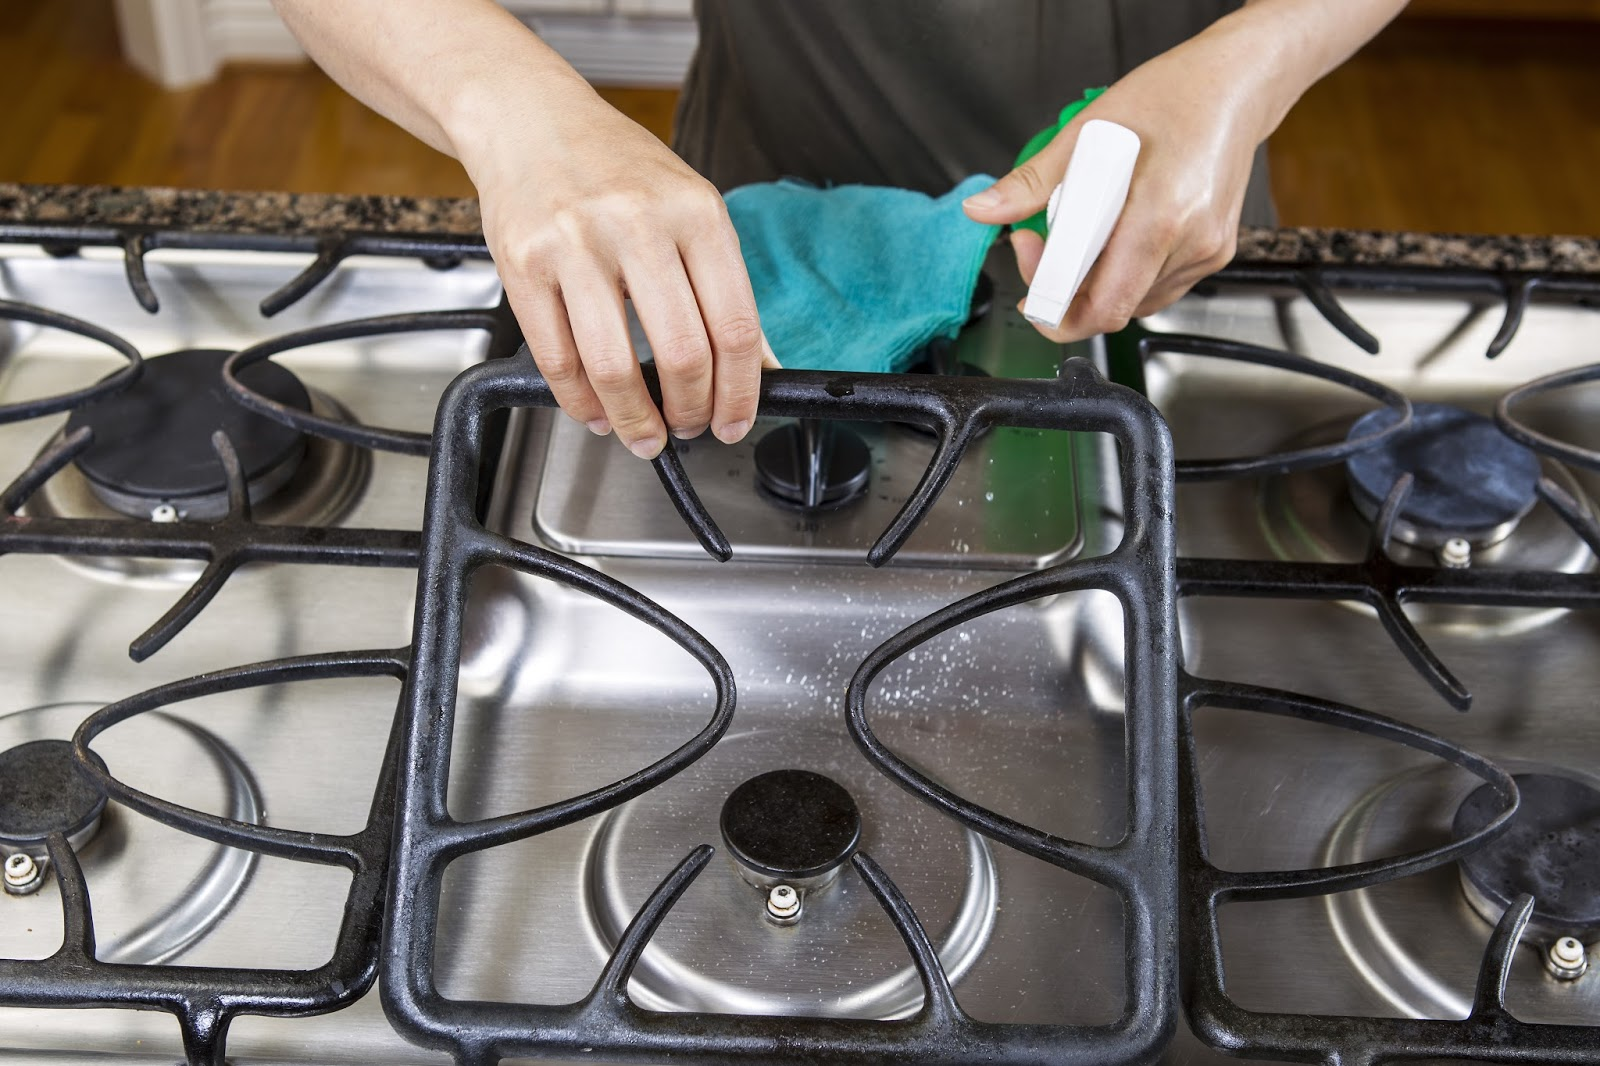 For Mothers Who Love To Cook Do Not Forget Maintain The Cleanliness Of Stove Yaa Bun Here Is A Quick And Proper Cleaning With Baking Soda